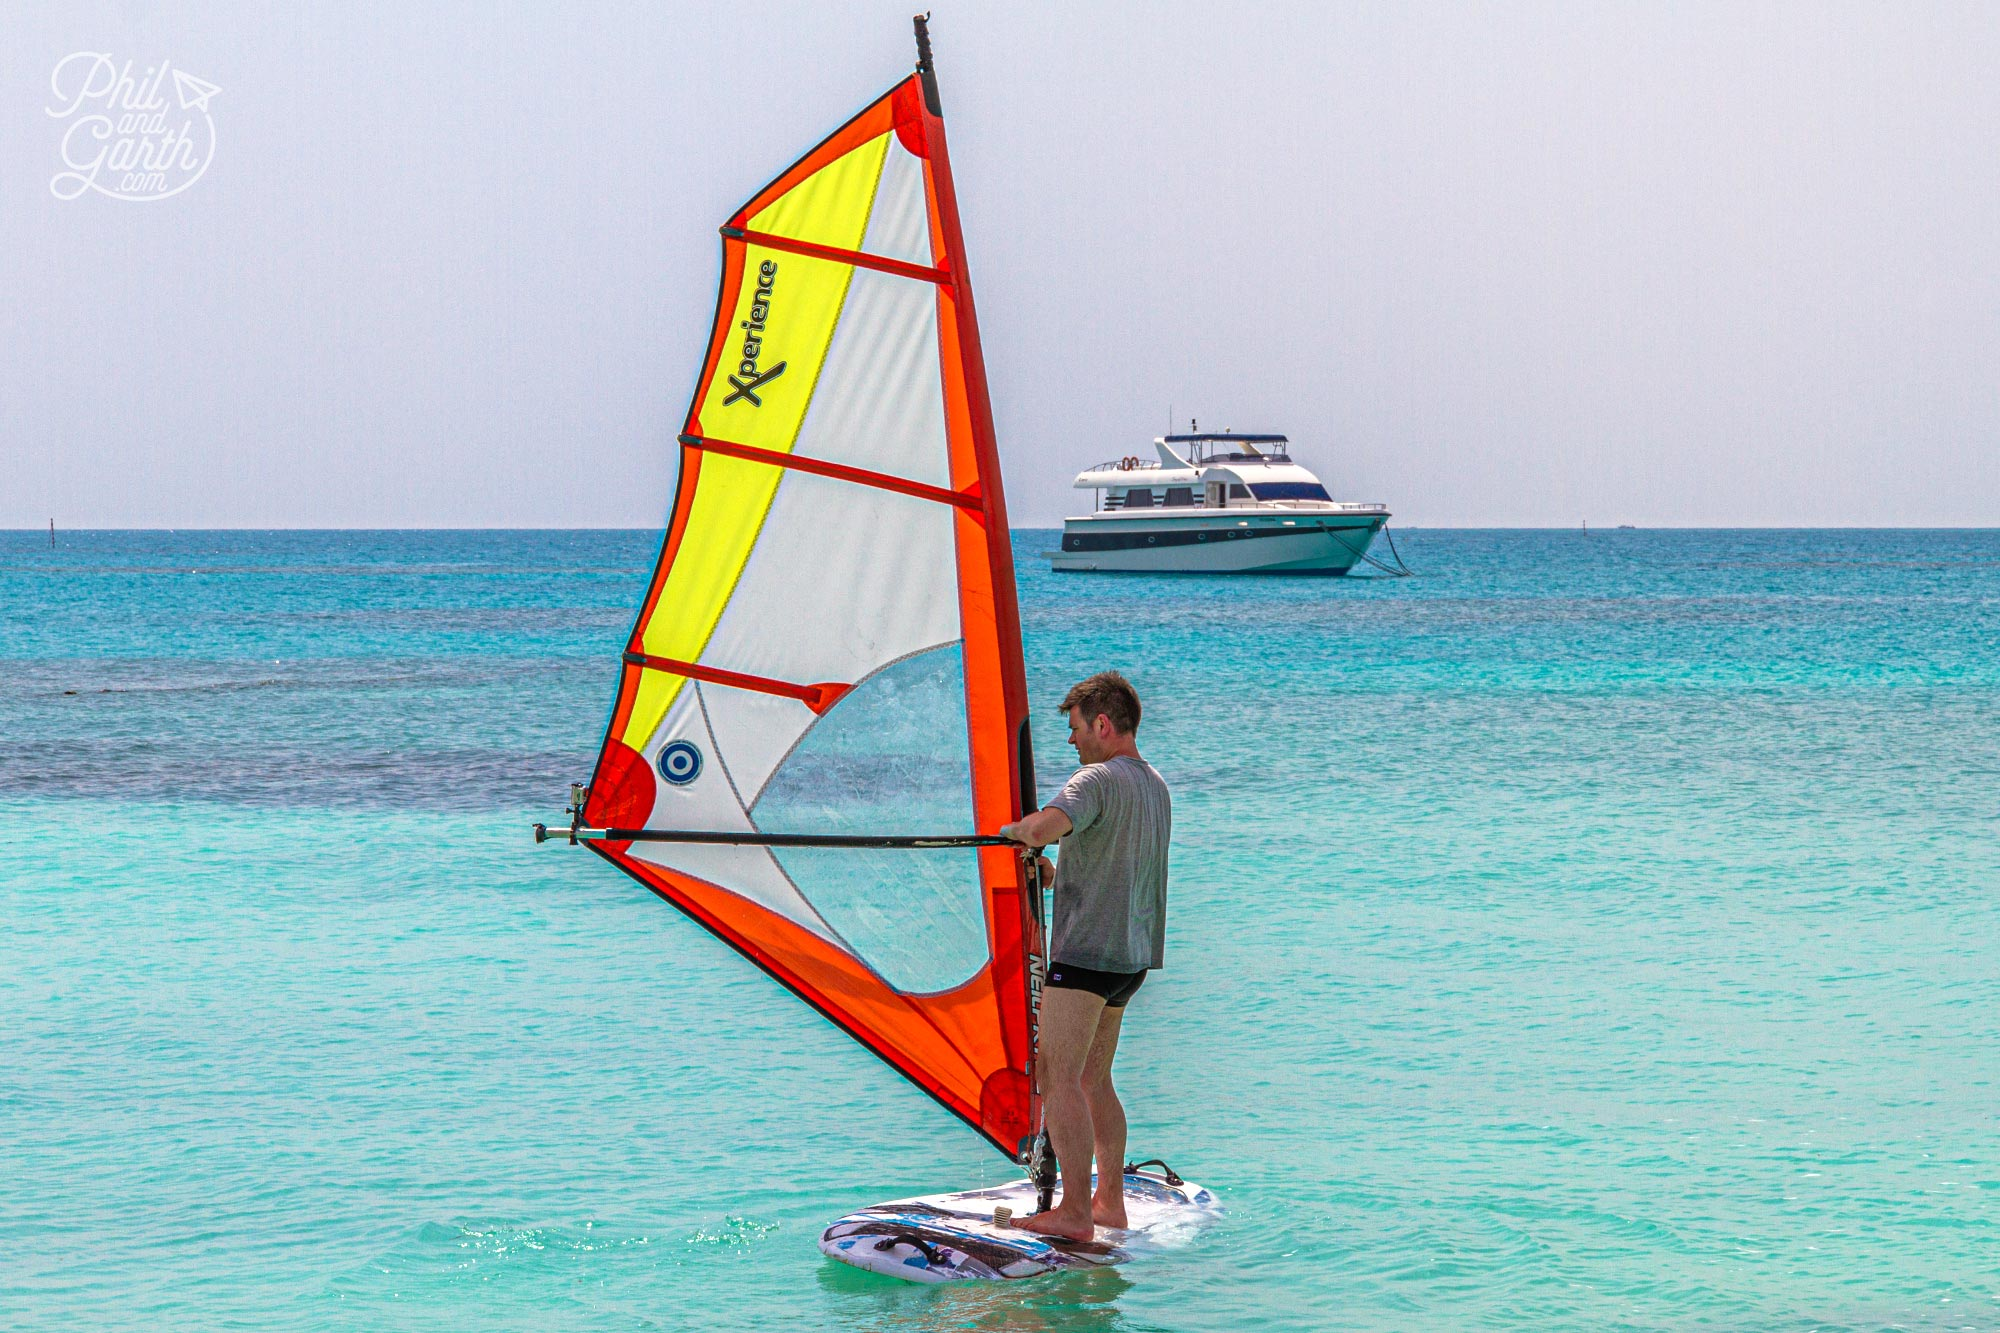 Phil trying his hand at windsurfing